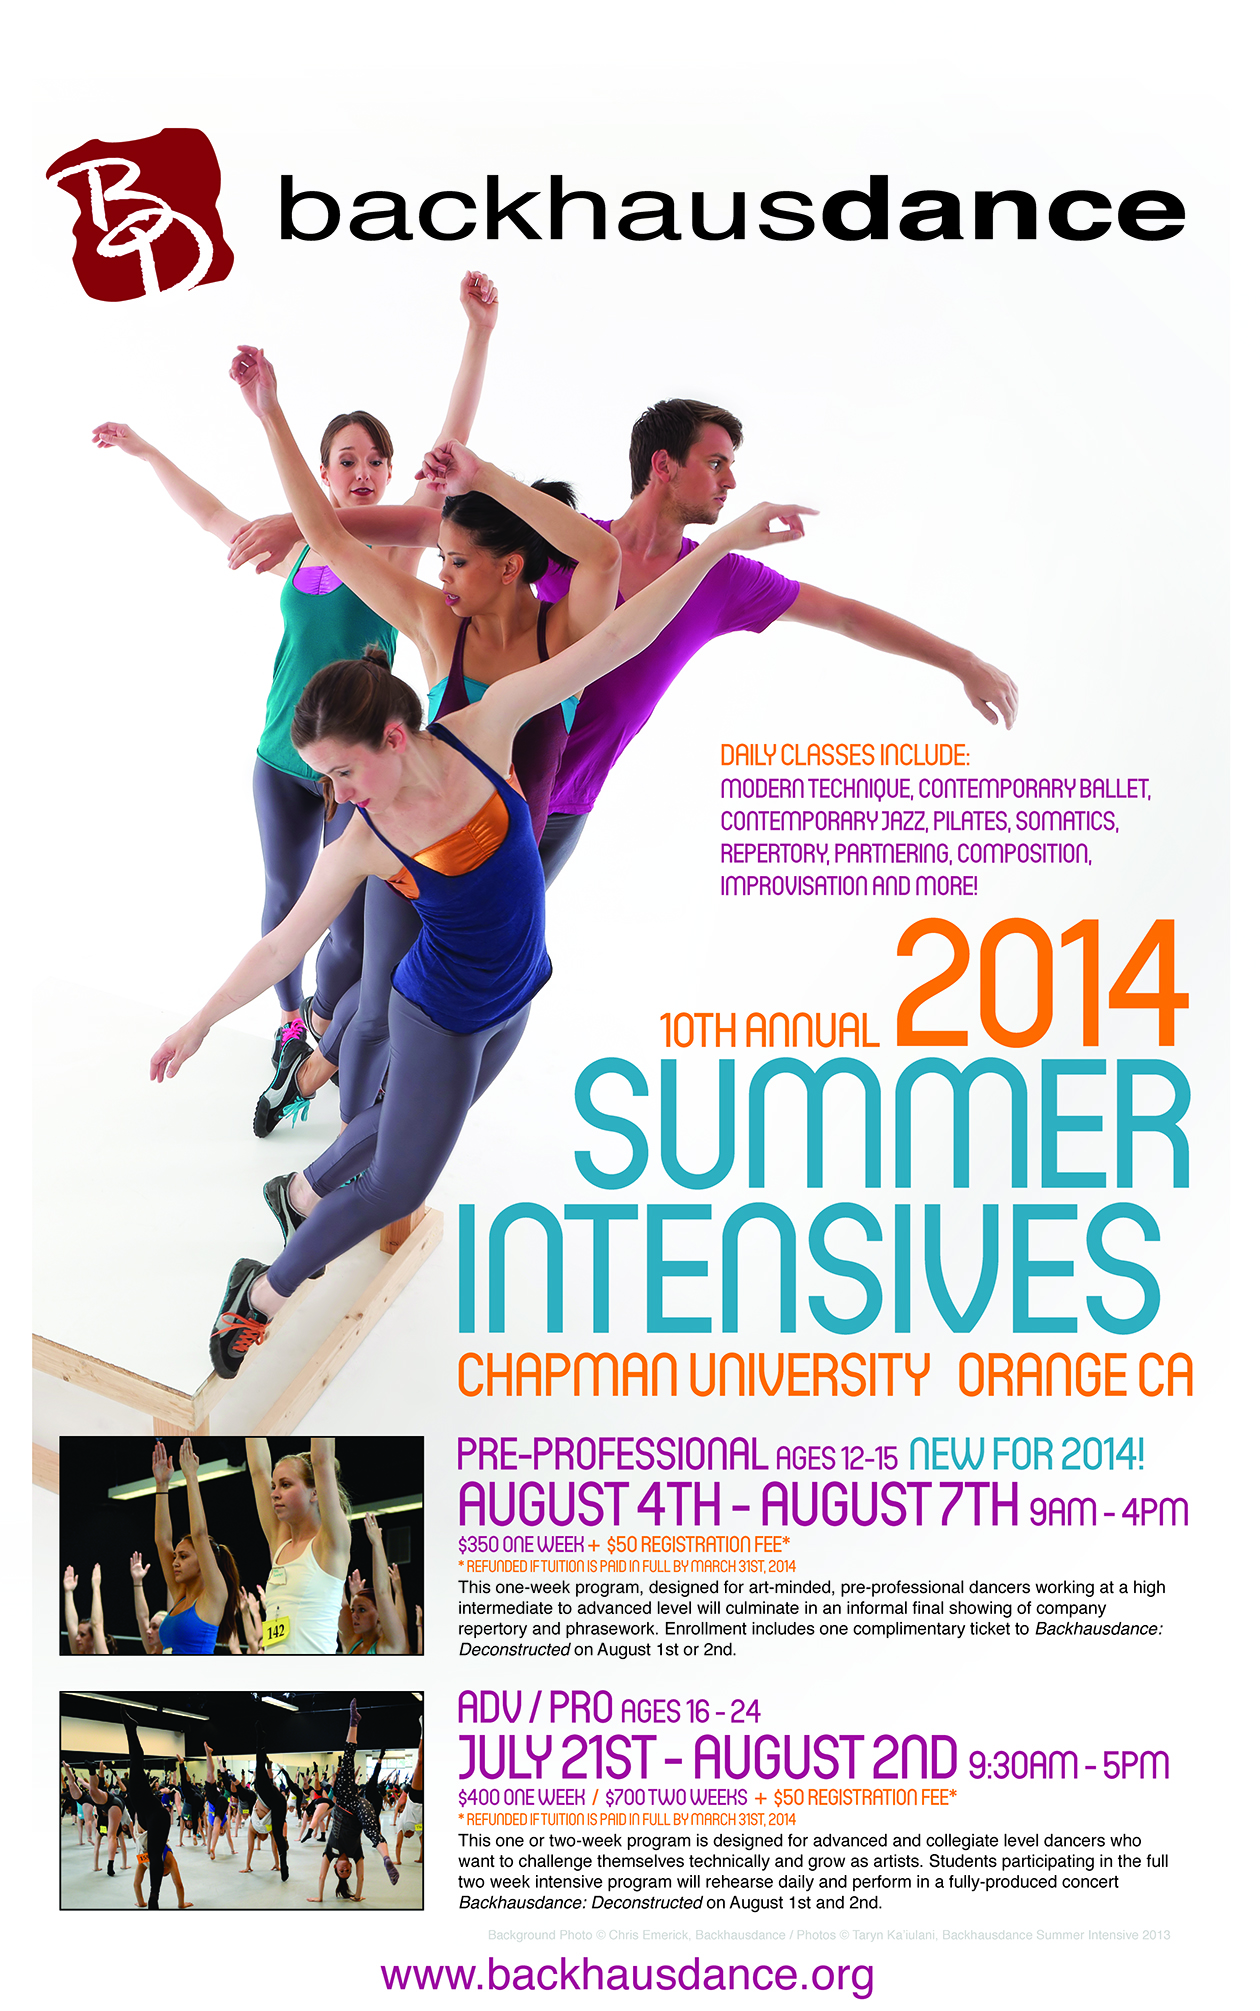 Backhausdance 2014 Summer Intensives connect dancers with